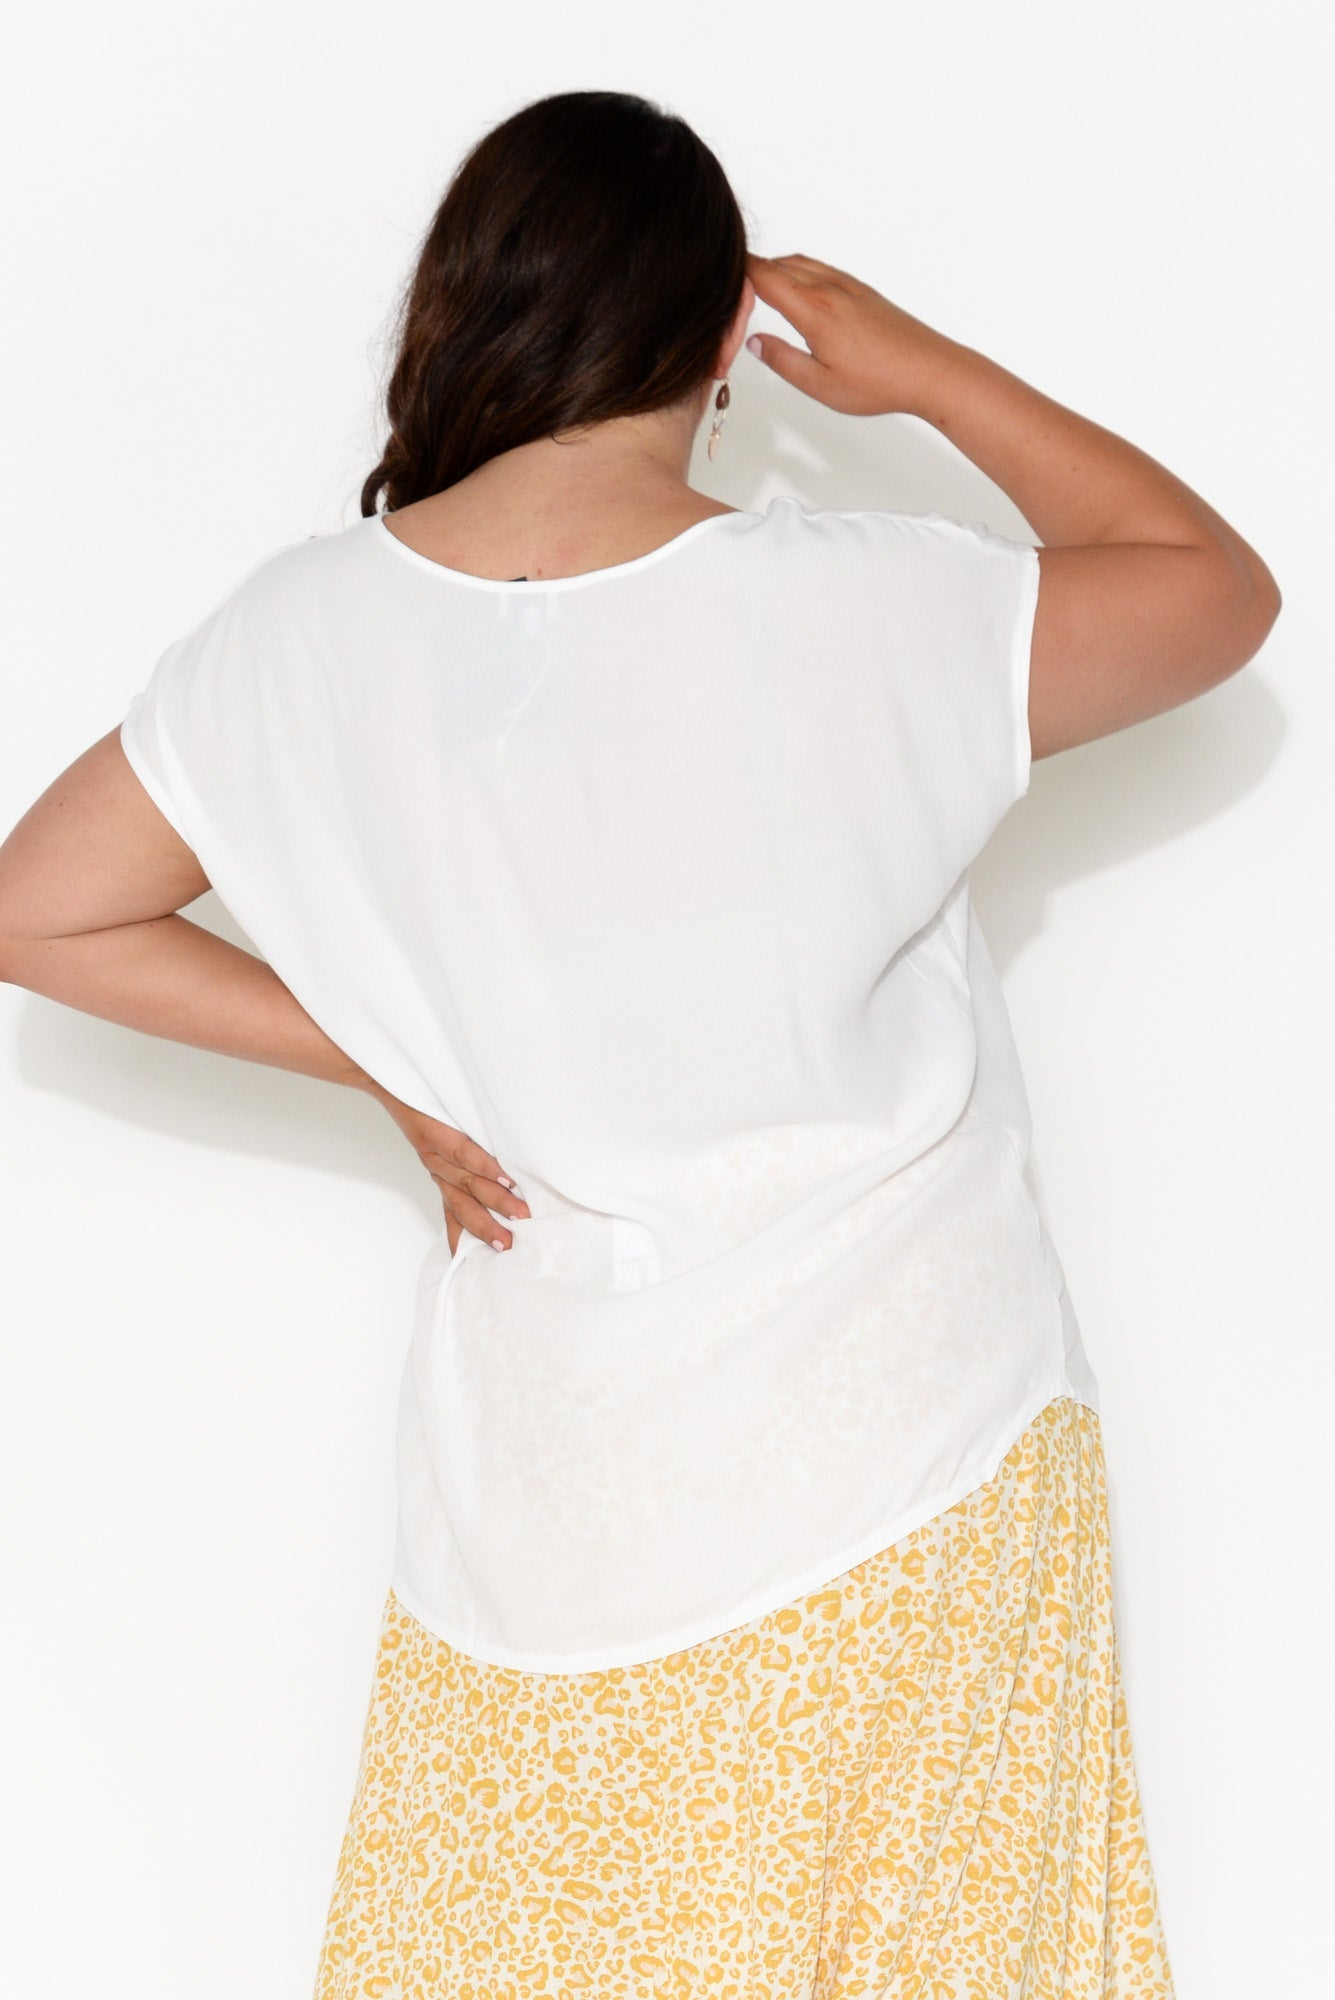 Essi White Shell Top